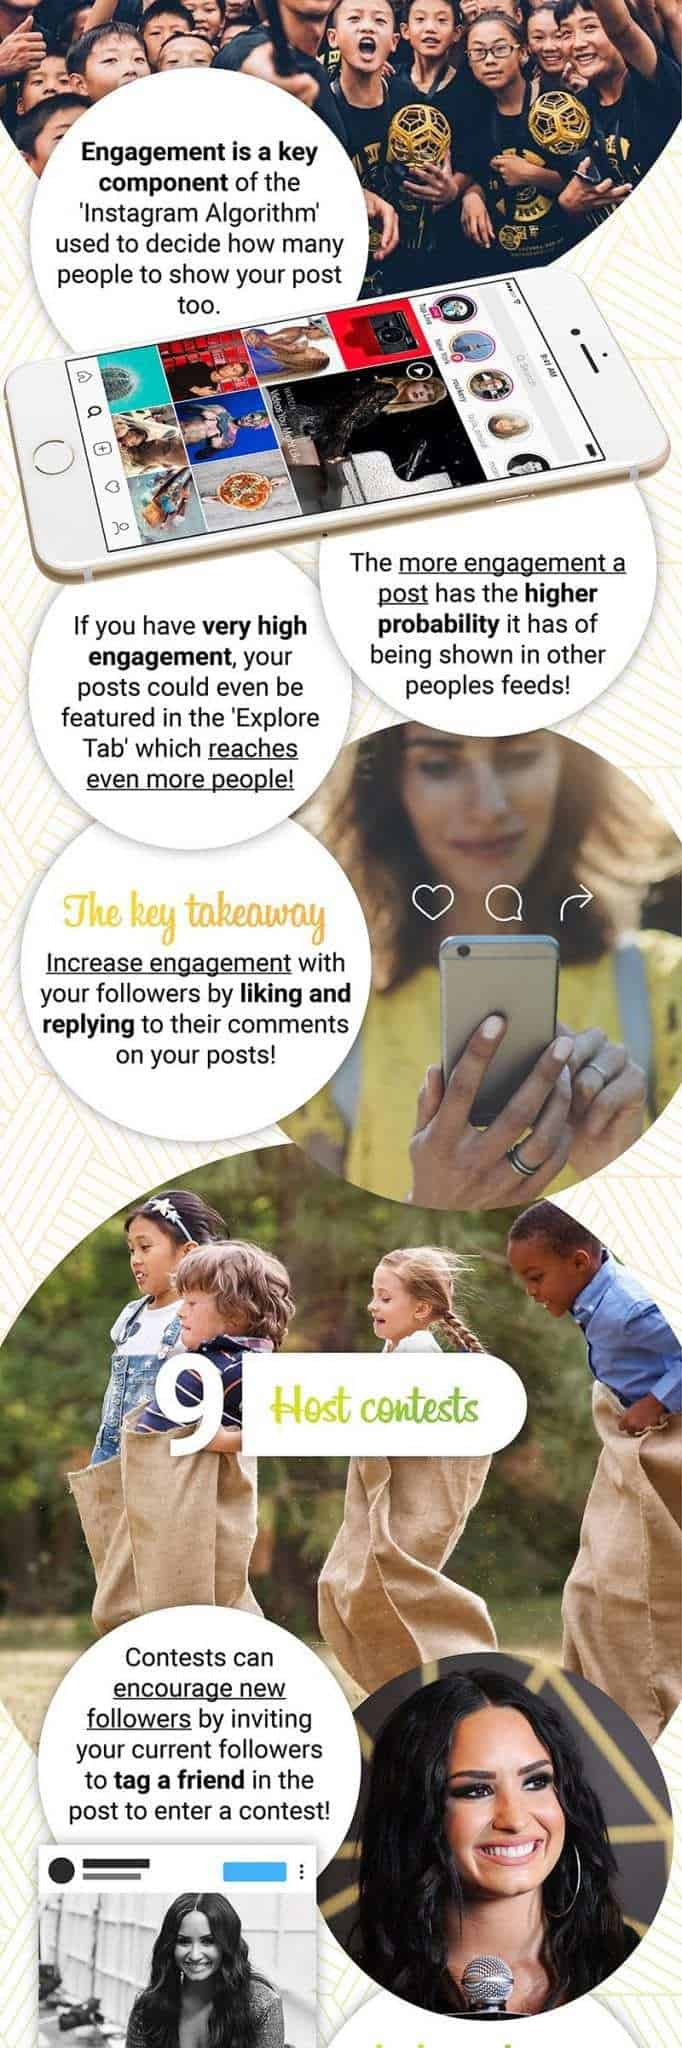 For more tips and tricks on getting more followers for your Instagram, check out this cool infographic.